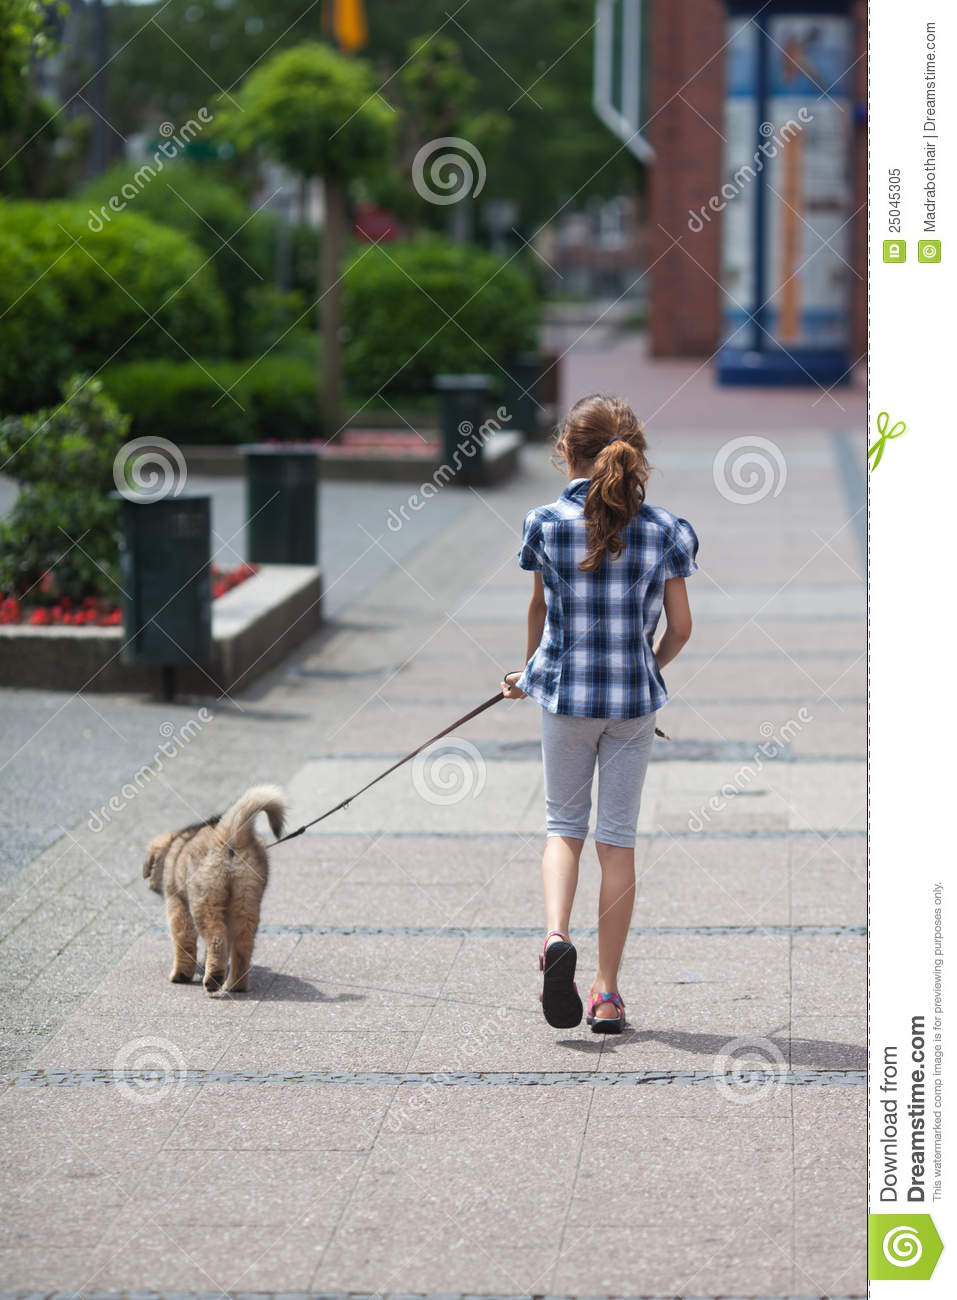 Young Girl Walks A Puppy In The City Royalty Free Stock ... | 957 x 1300 jpeg 143kB